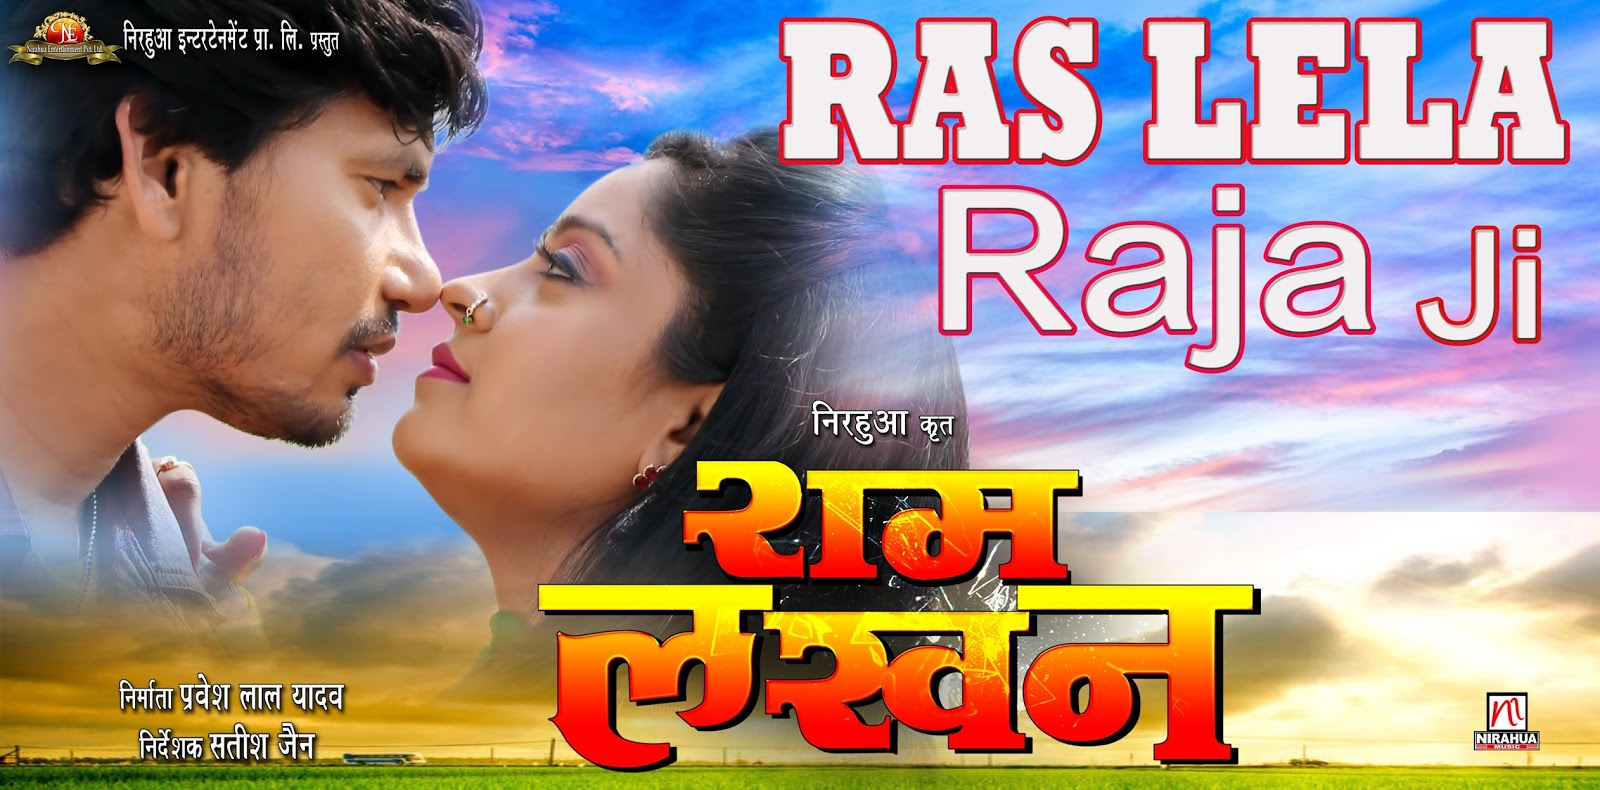 Pravesh Lal Yadav, Subhi Sharma'Aawa Rajaiya Mein Ras Lela Rajaji' Bhojpuri Hot Full HD Song Form Film Ram Lakhan on Top 10 Bhojpuri